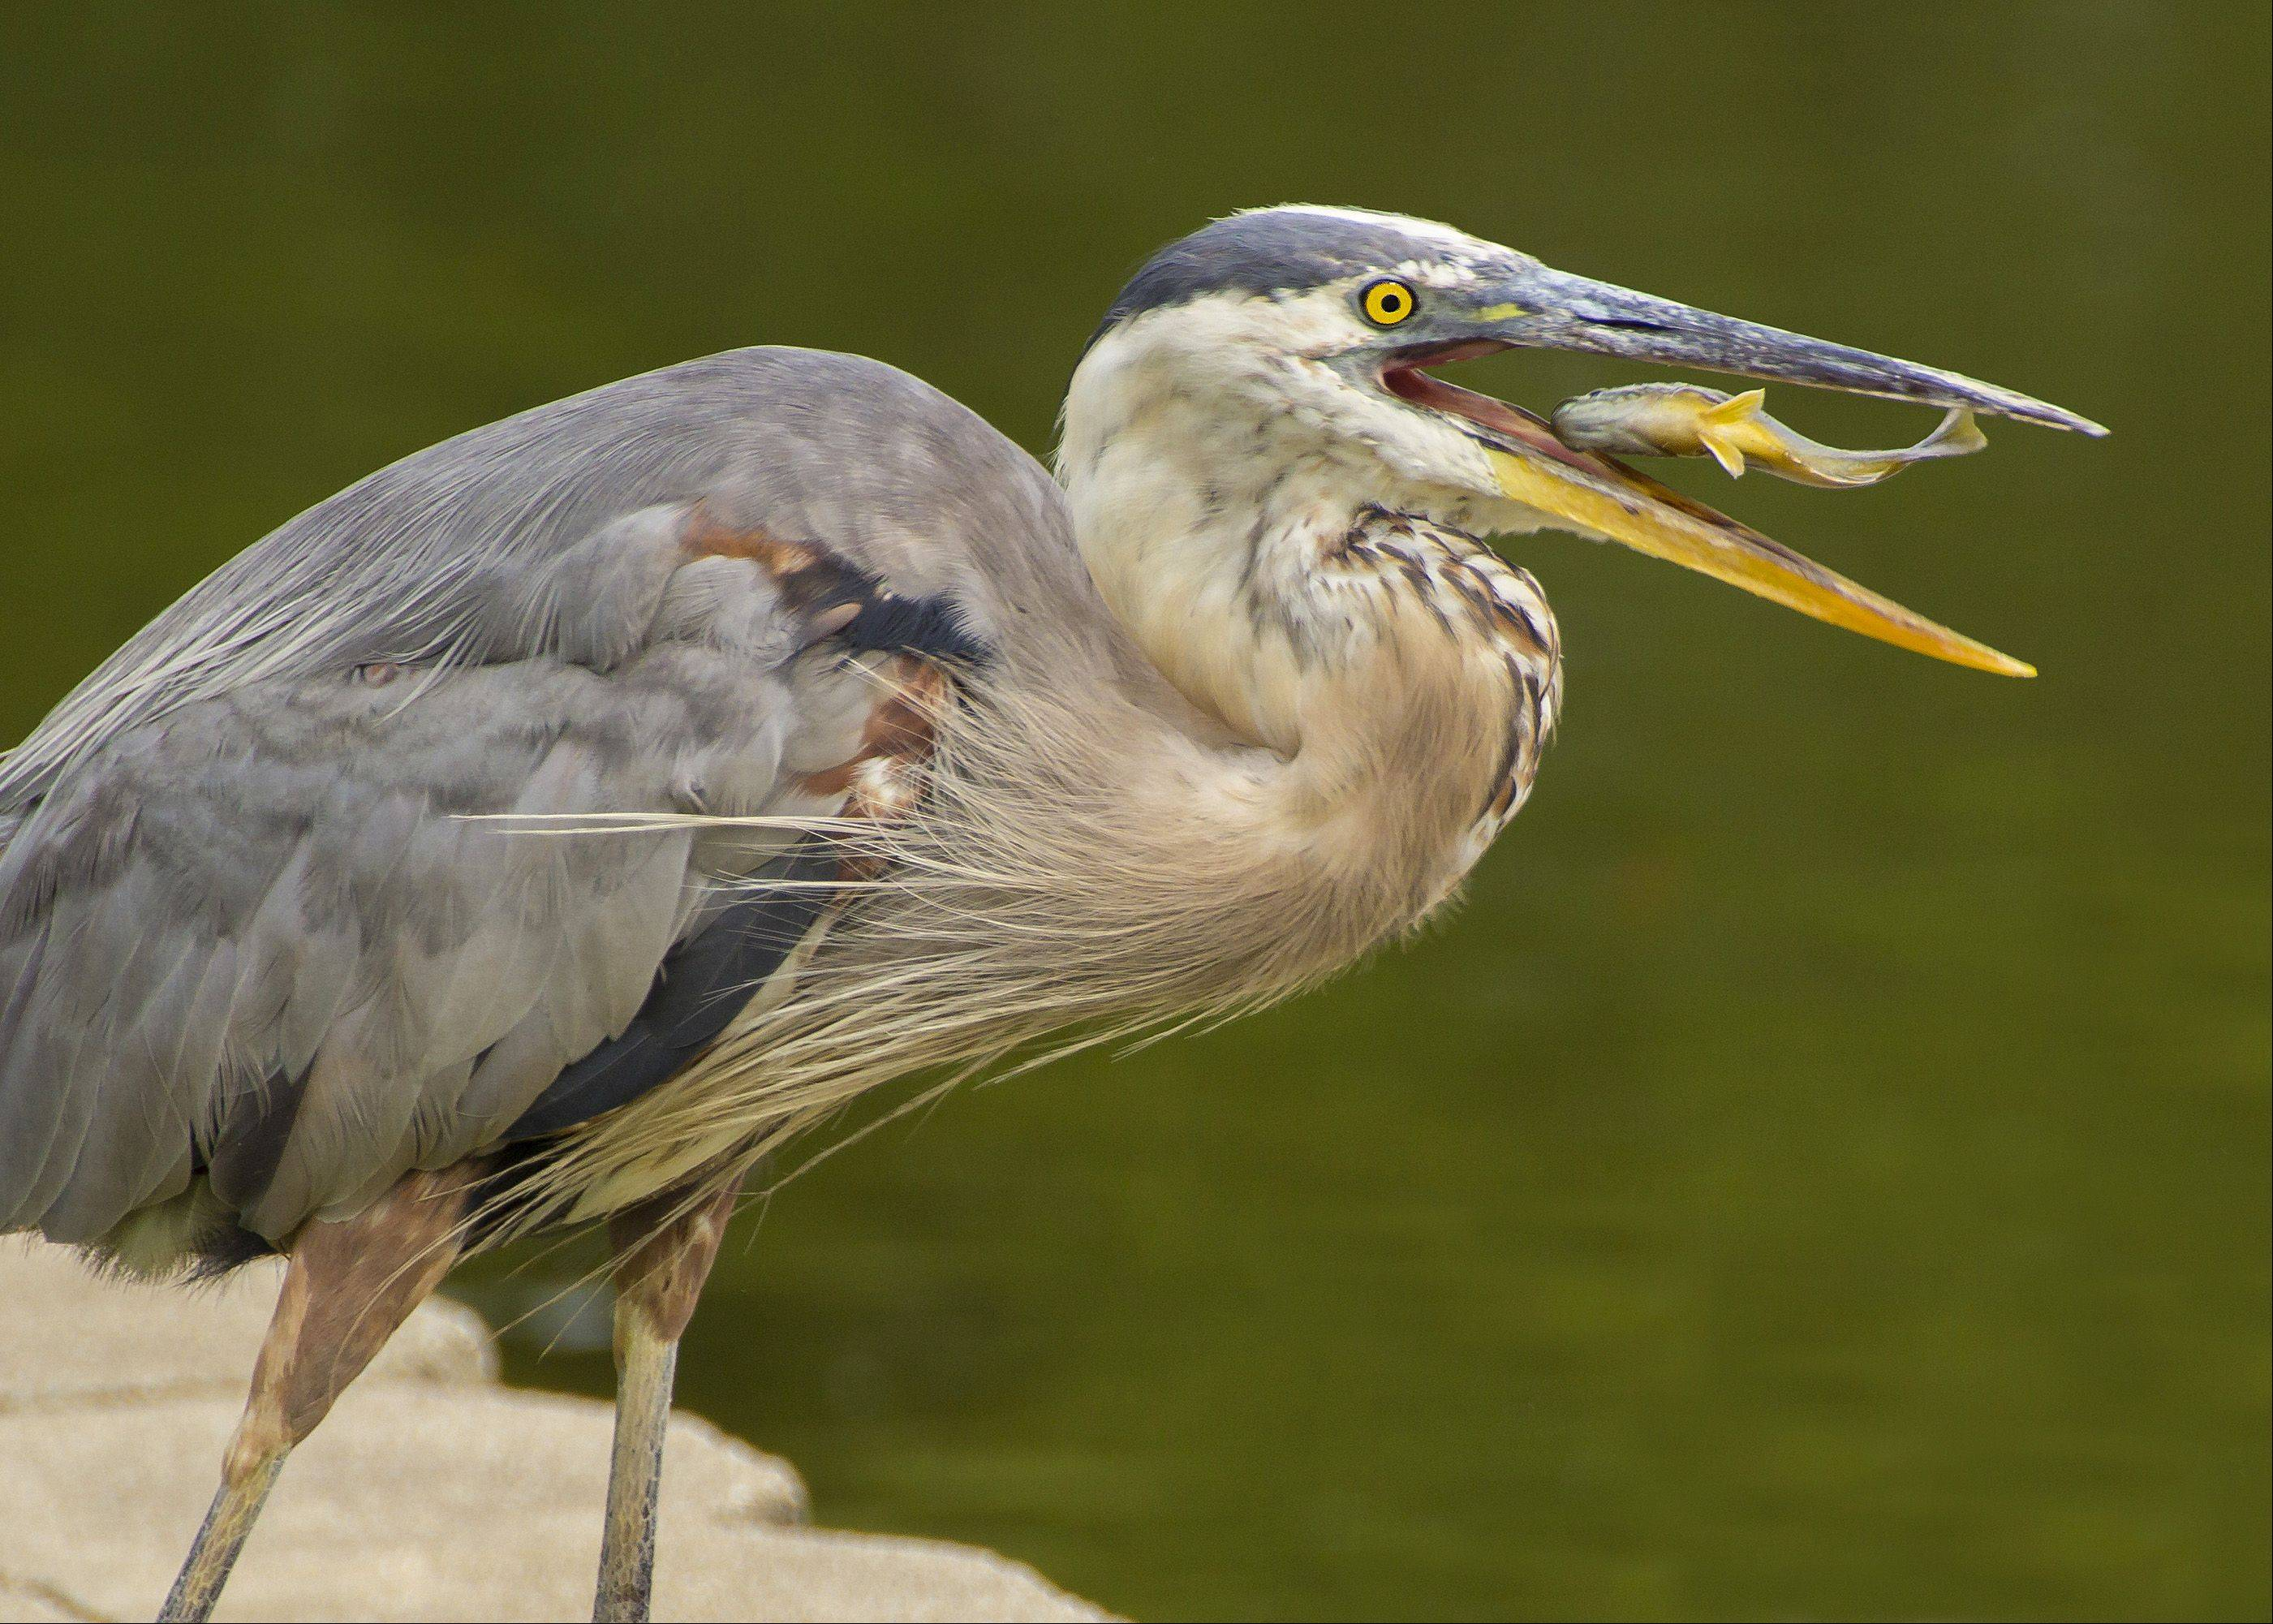 The is a Heron that spends it days at Turner Pond in Roselle. I was lucky enough to have camera in hand as a local gentleman who was fishing threw the bird a snack. The picture was taken with Canon 60D.